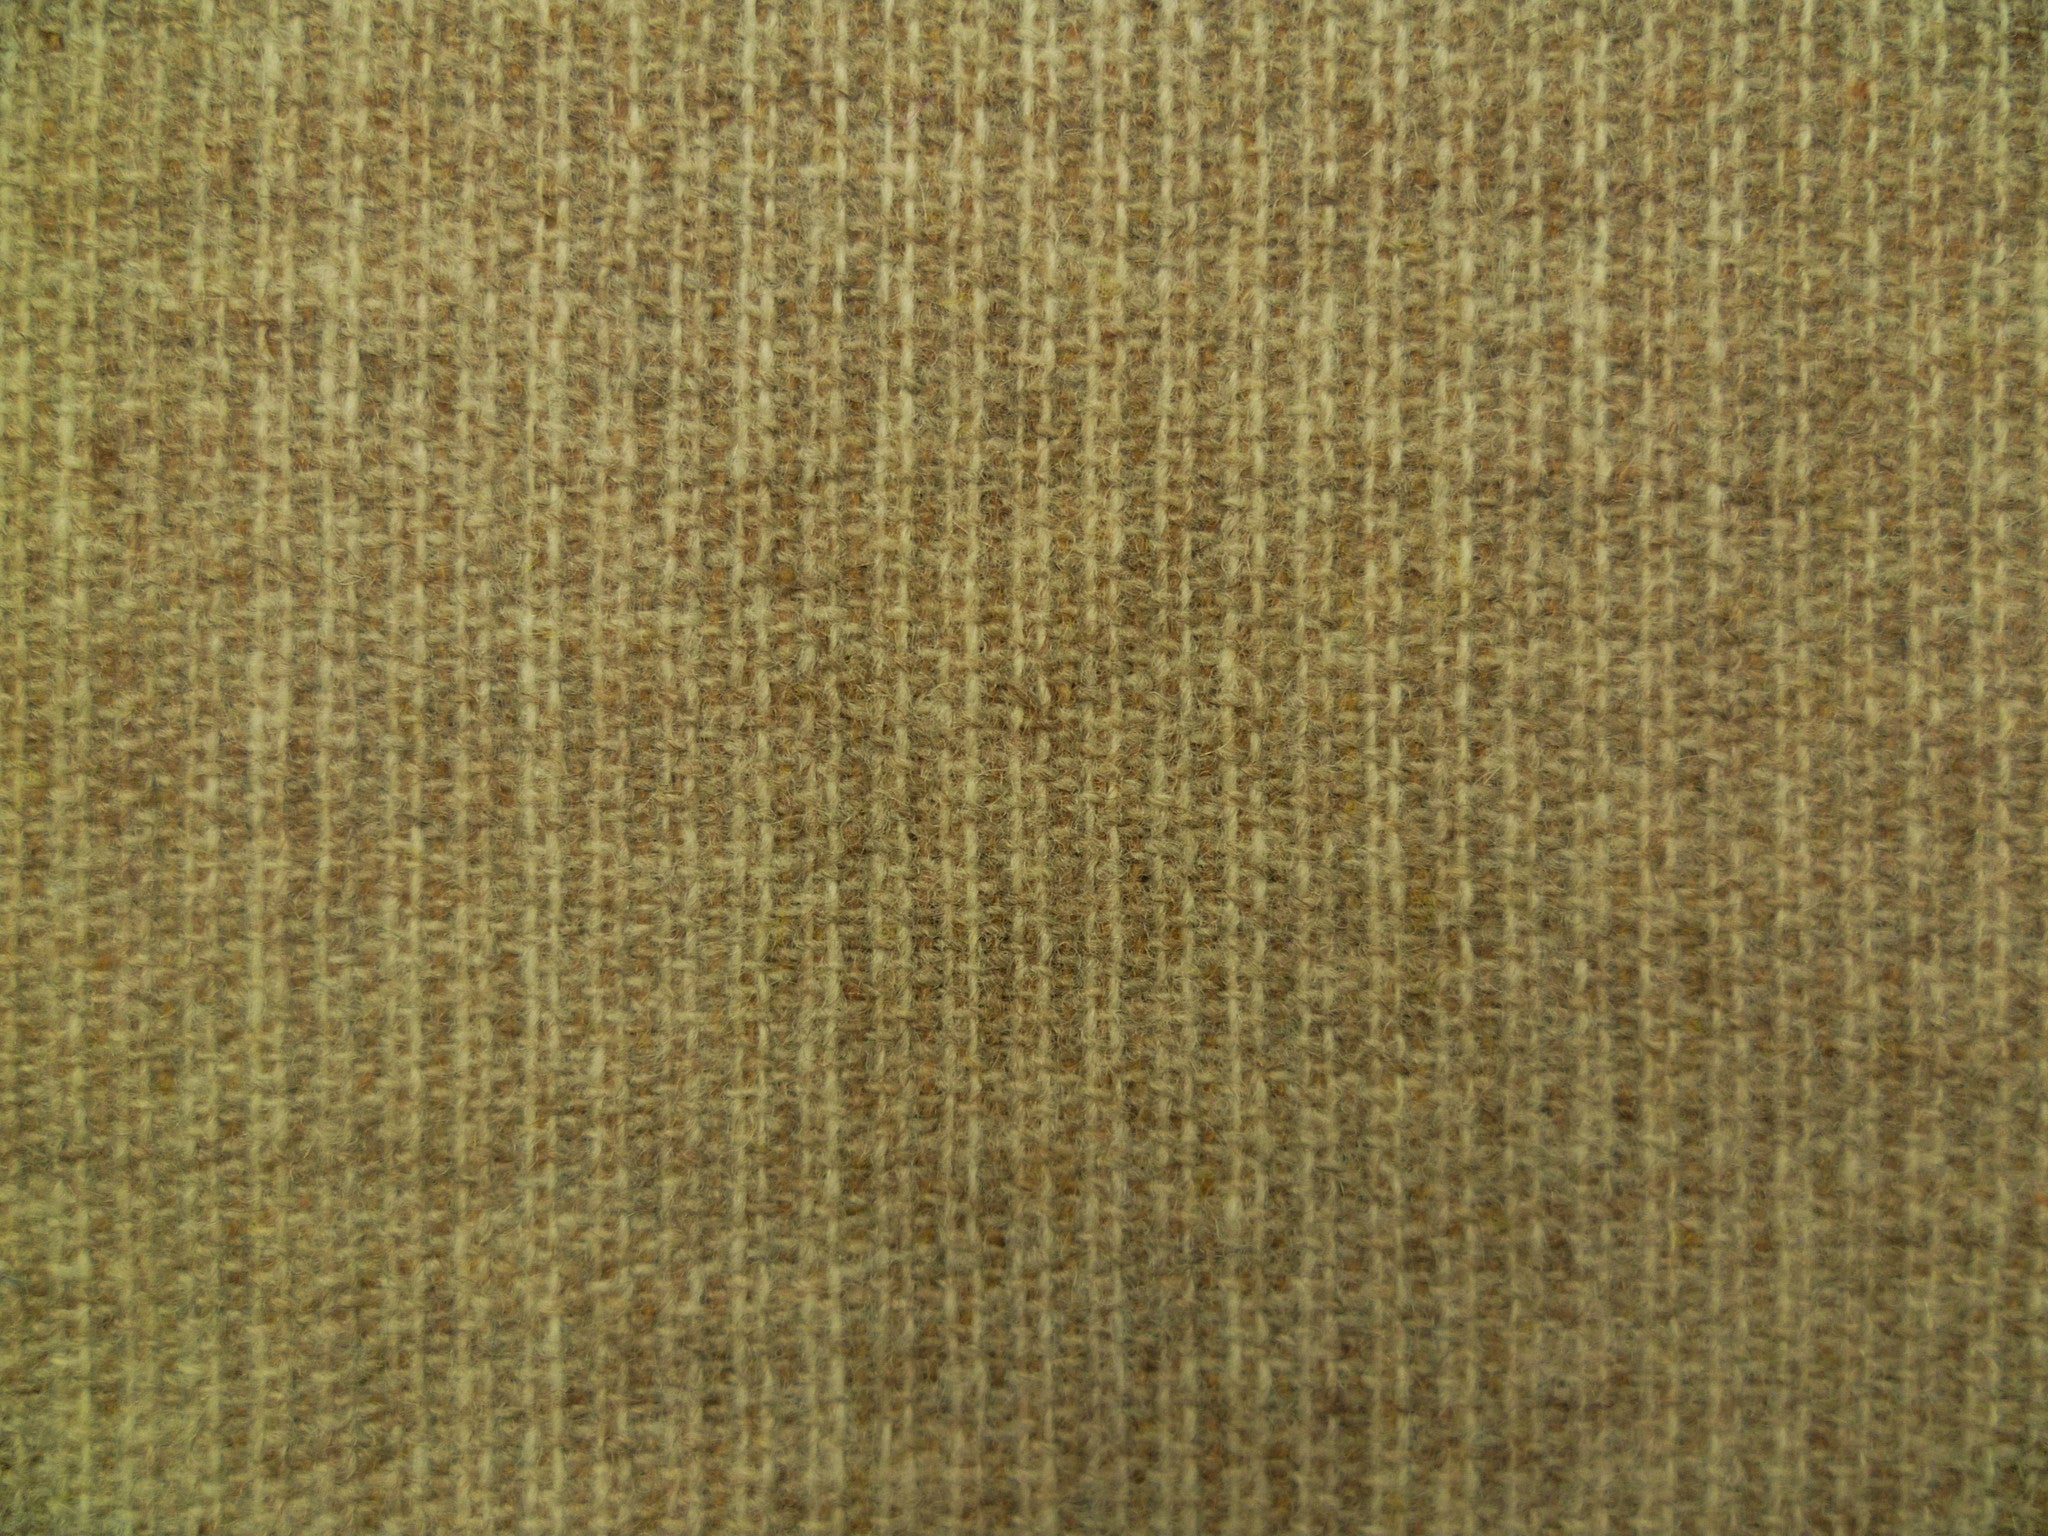 Oatmeal Ribbed Patterned Wool